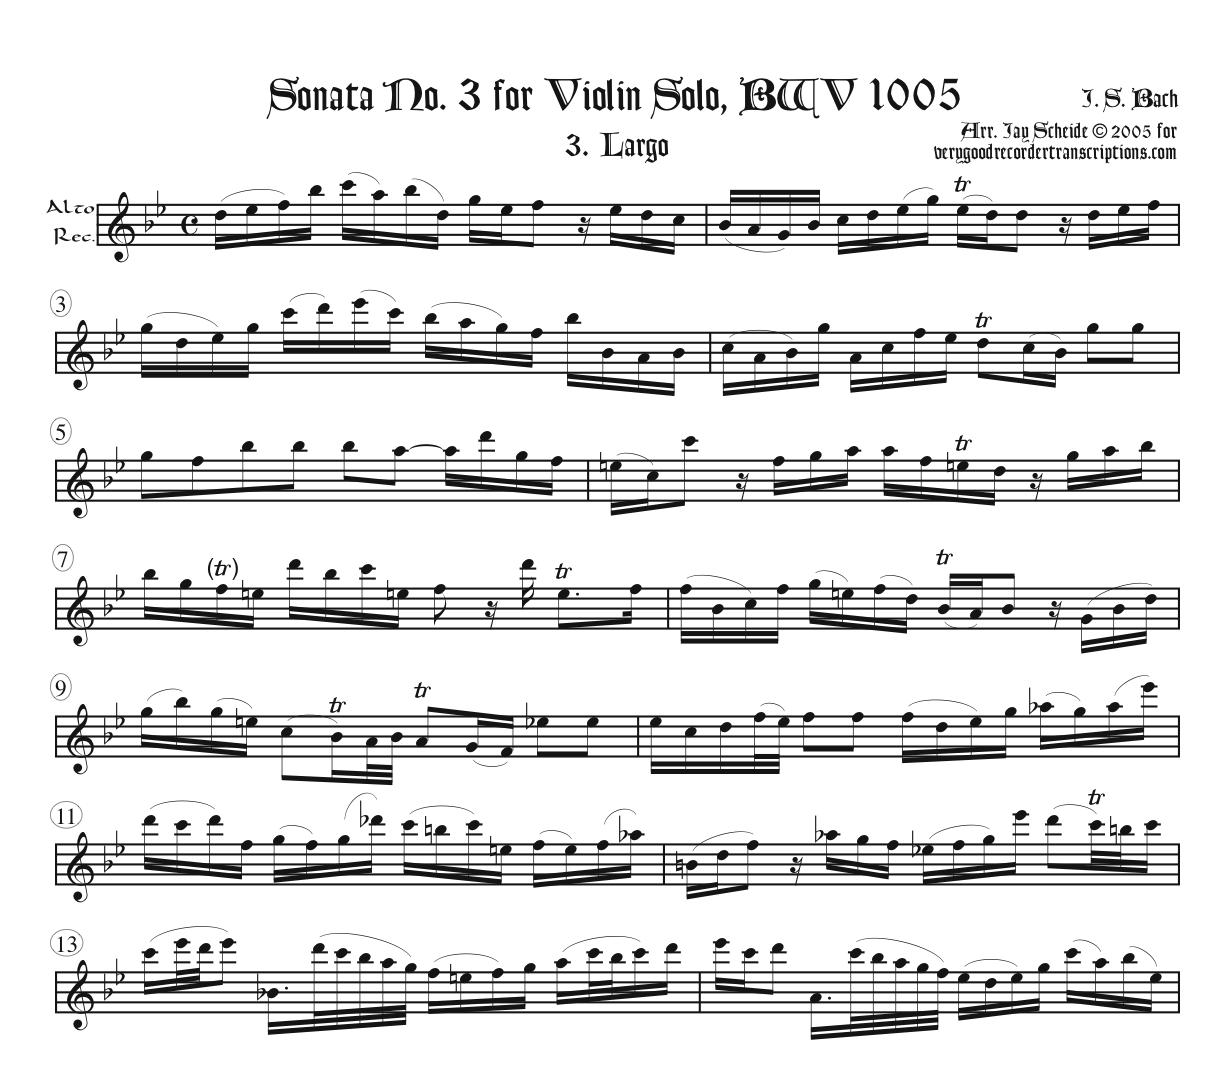 Largo & Allegro assai from Sonata No. 3, BWV 1005